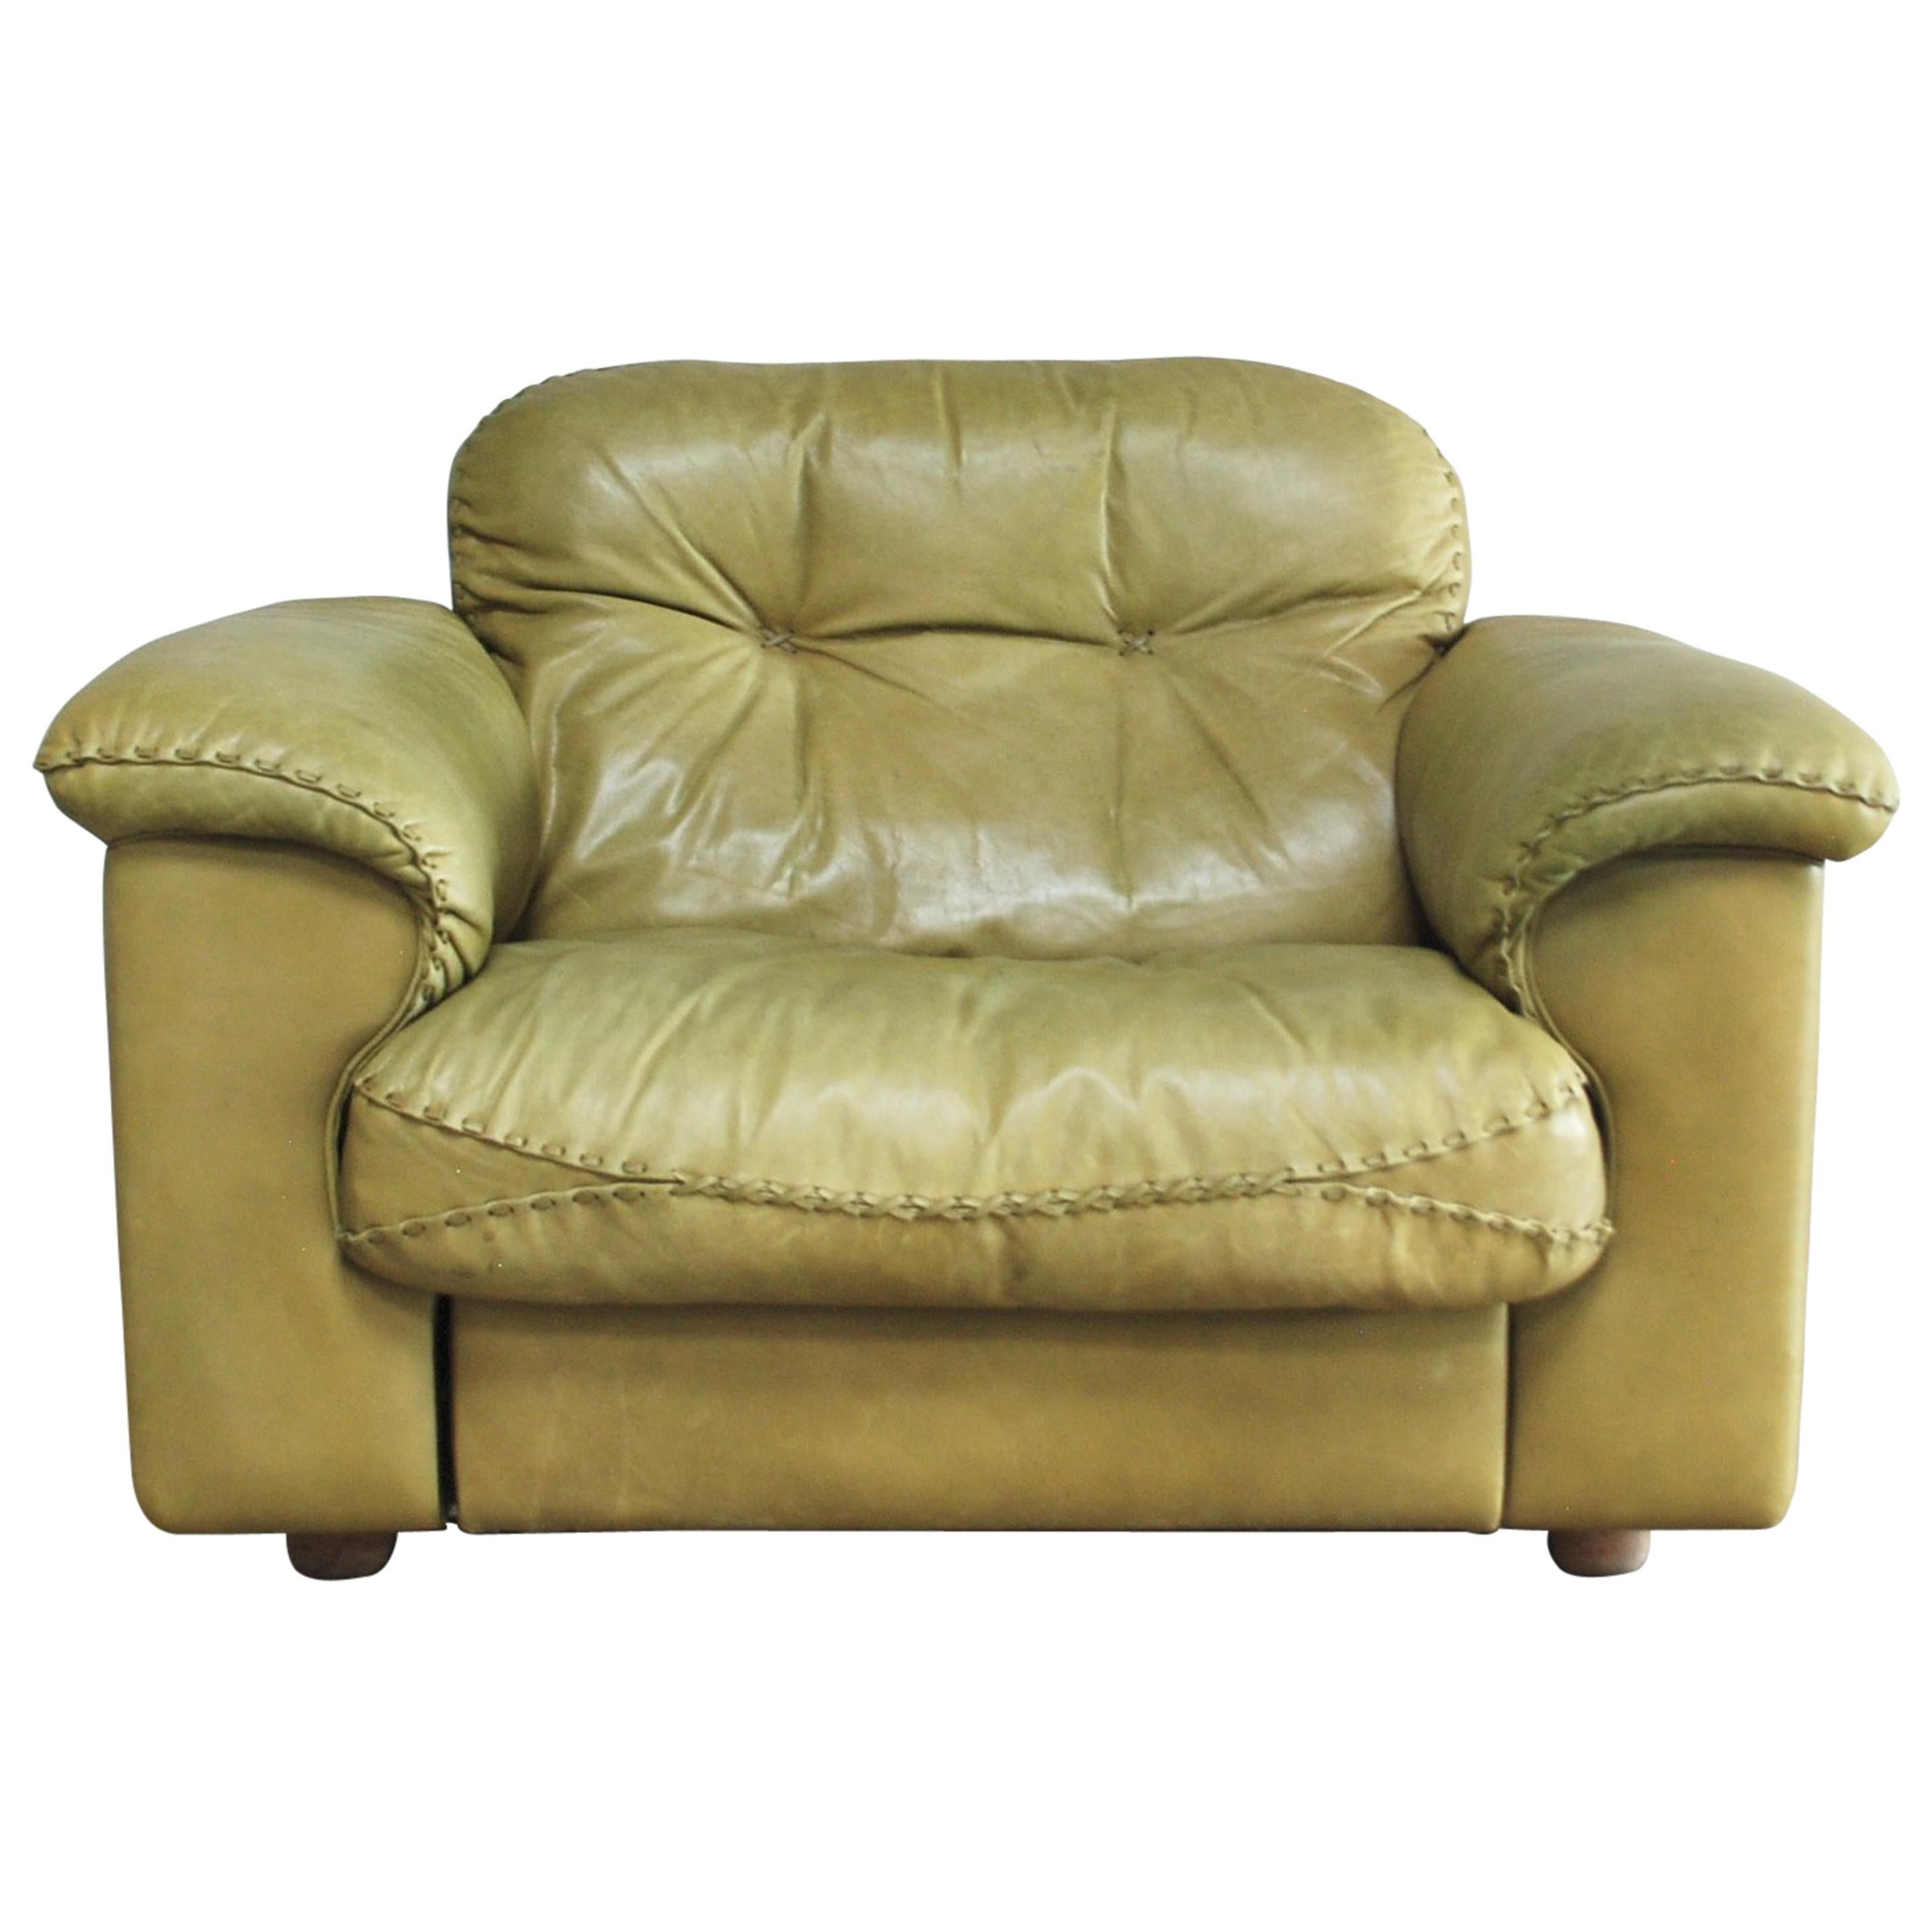 Leather Lounge De Sede James Bond Leather Lounge Chair Ds 101 Olive Green